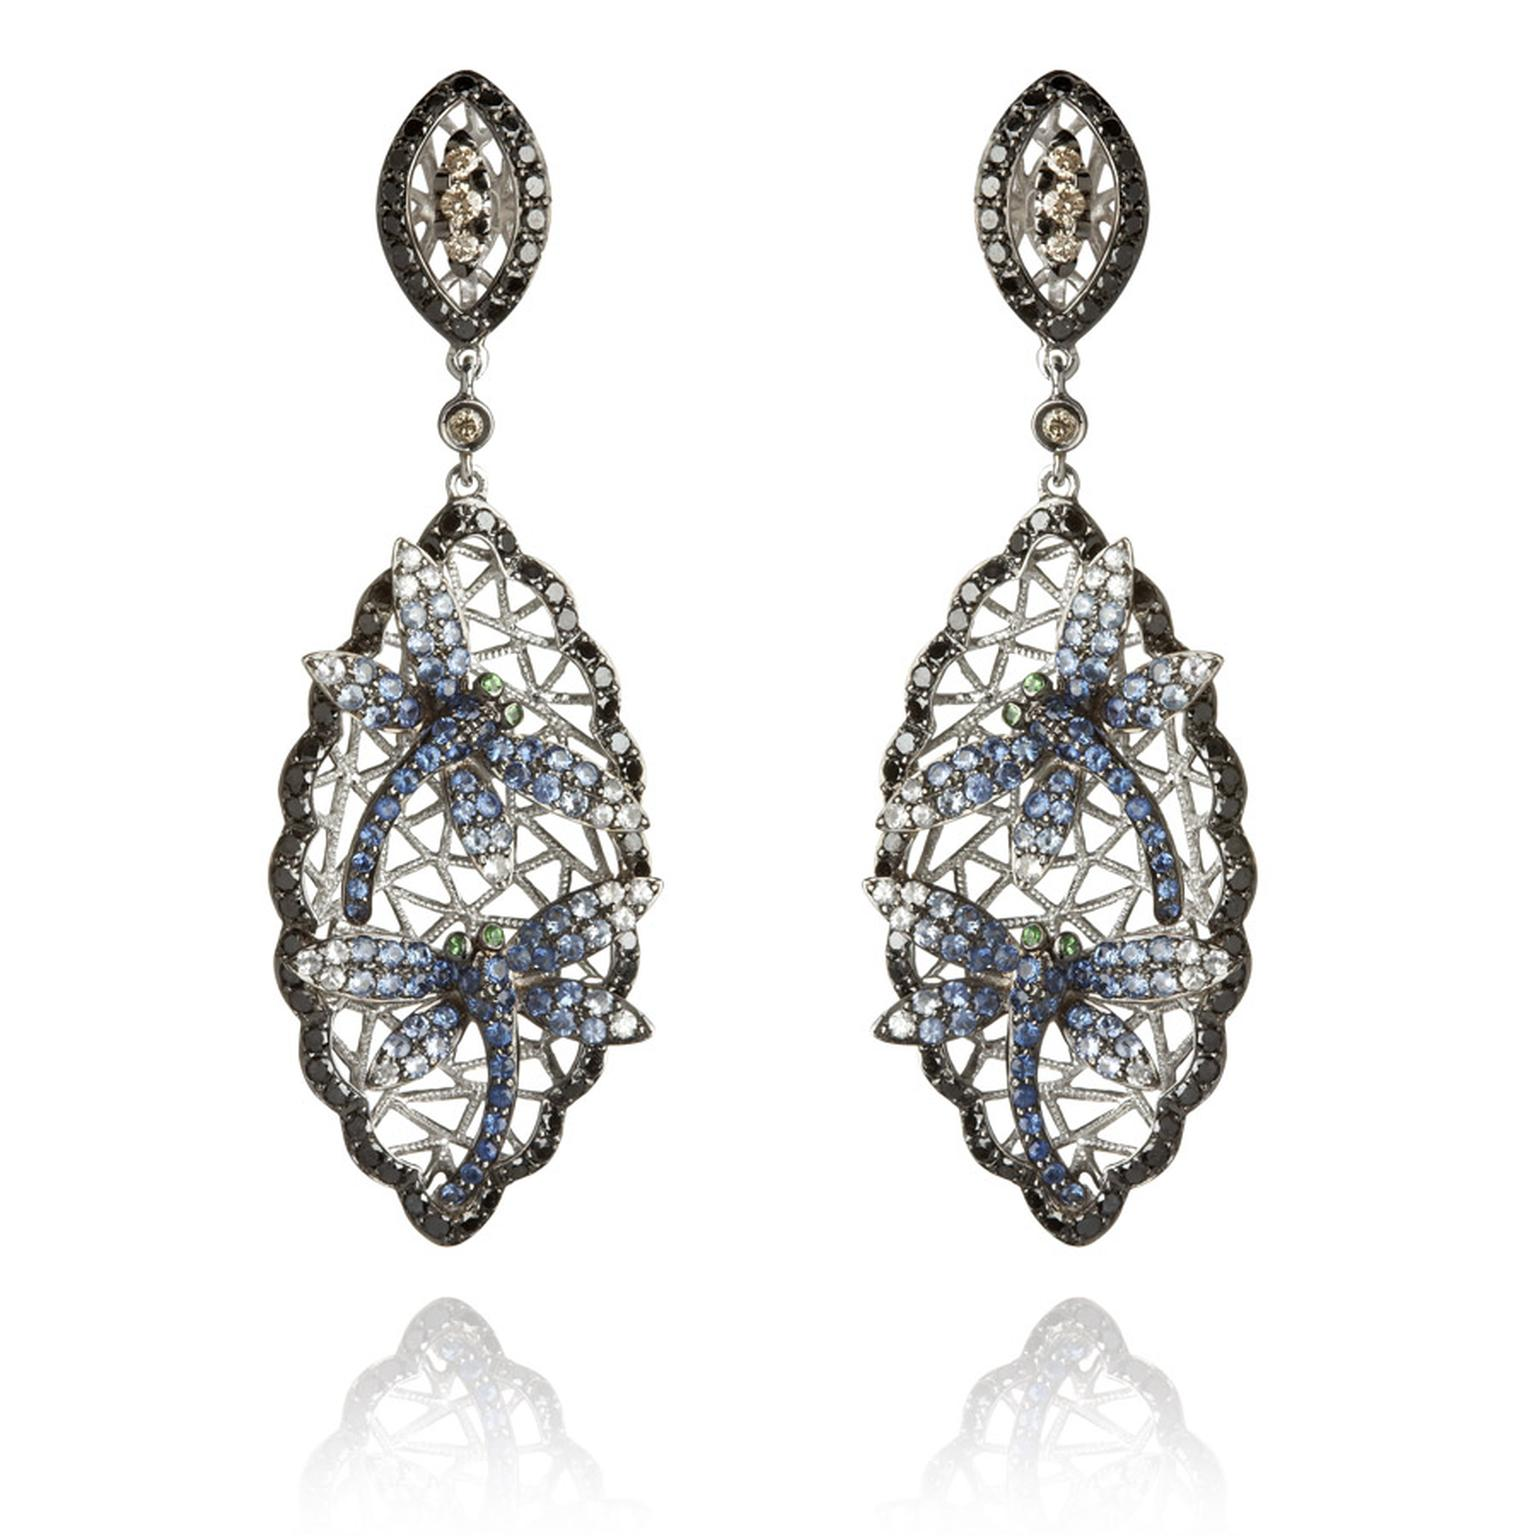 Wendy-Yue-Fantasie-18ct-white-gold--diamond-sapphire-and-garnet-Diving-Dragonfly-earrings-By-Wendy-Yue-for--Annoushka.jpg